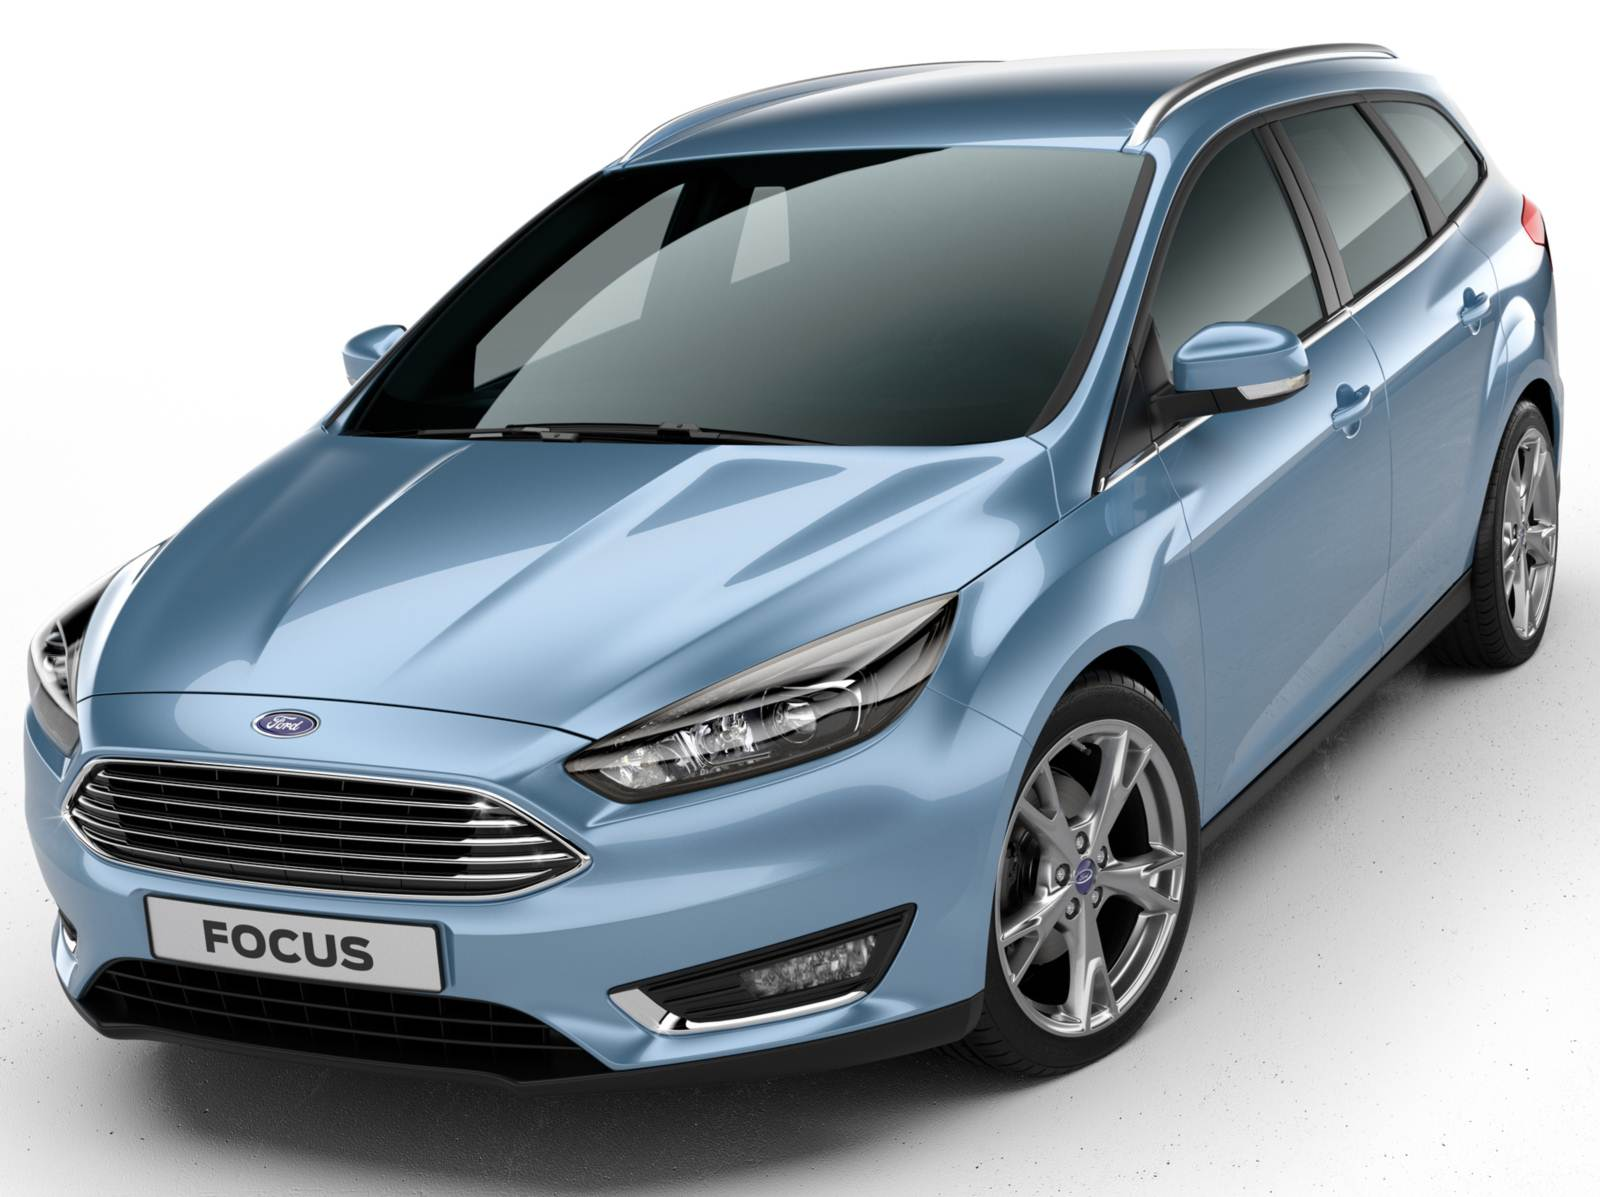 novo ford focus 2015 fotos oficiais do modelo com facelift car blog br. Black Bedroom Furniture Sets. Home Design Ideas